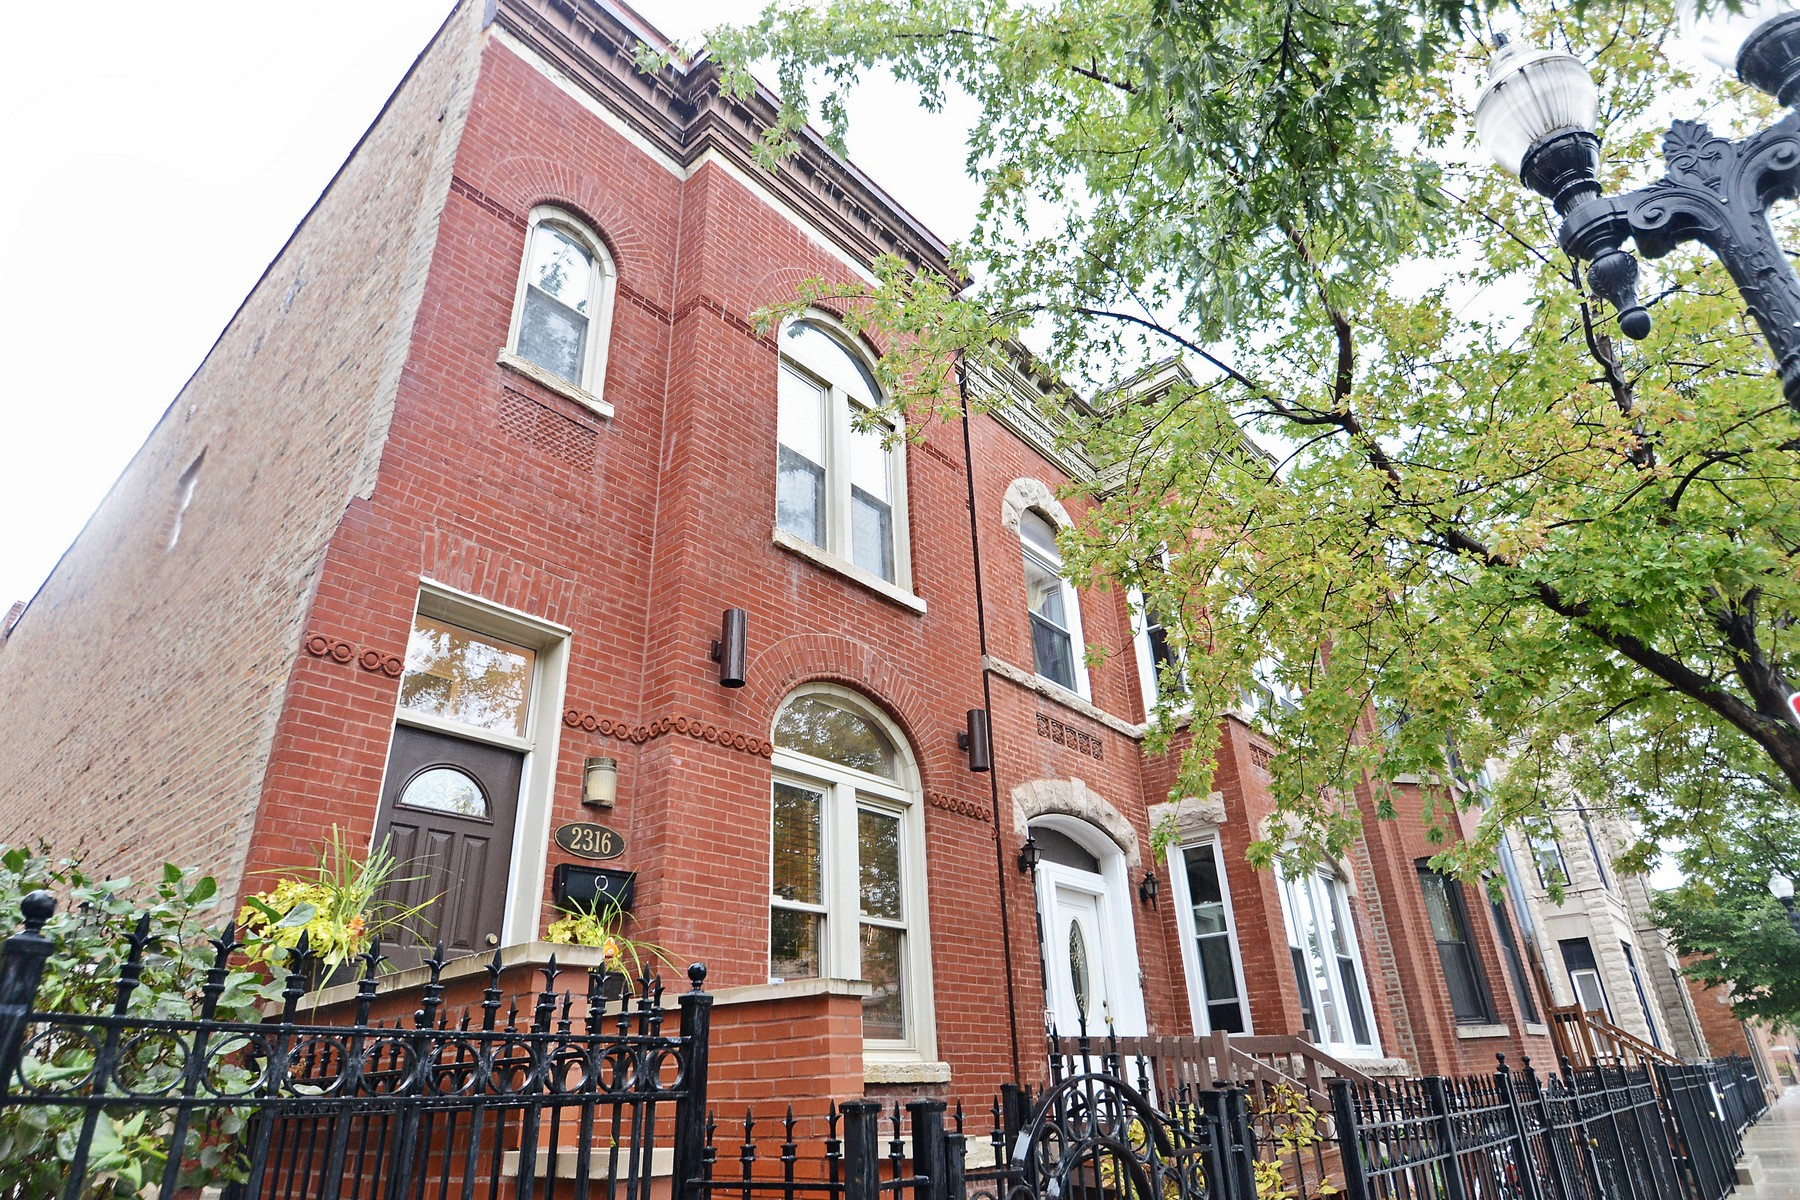 Multi-Family Home for Sale at Great Investment Opportunity! 2316 W Taylor Street Near West Side, Chicago, Illinois 60612 United States